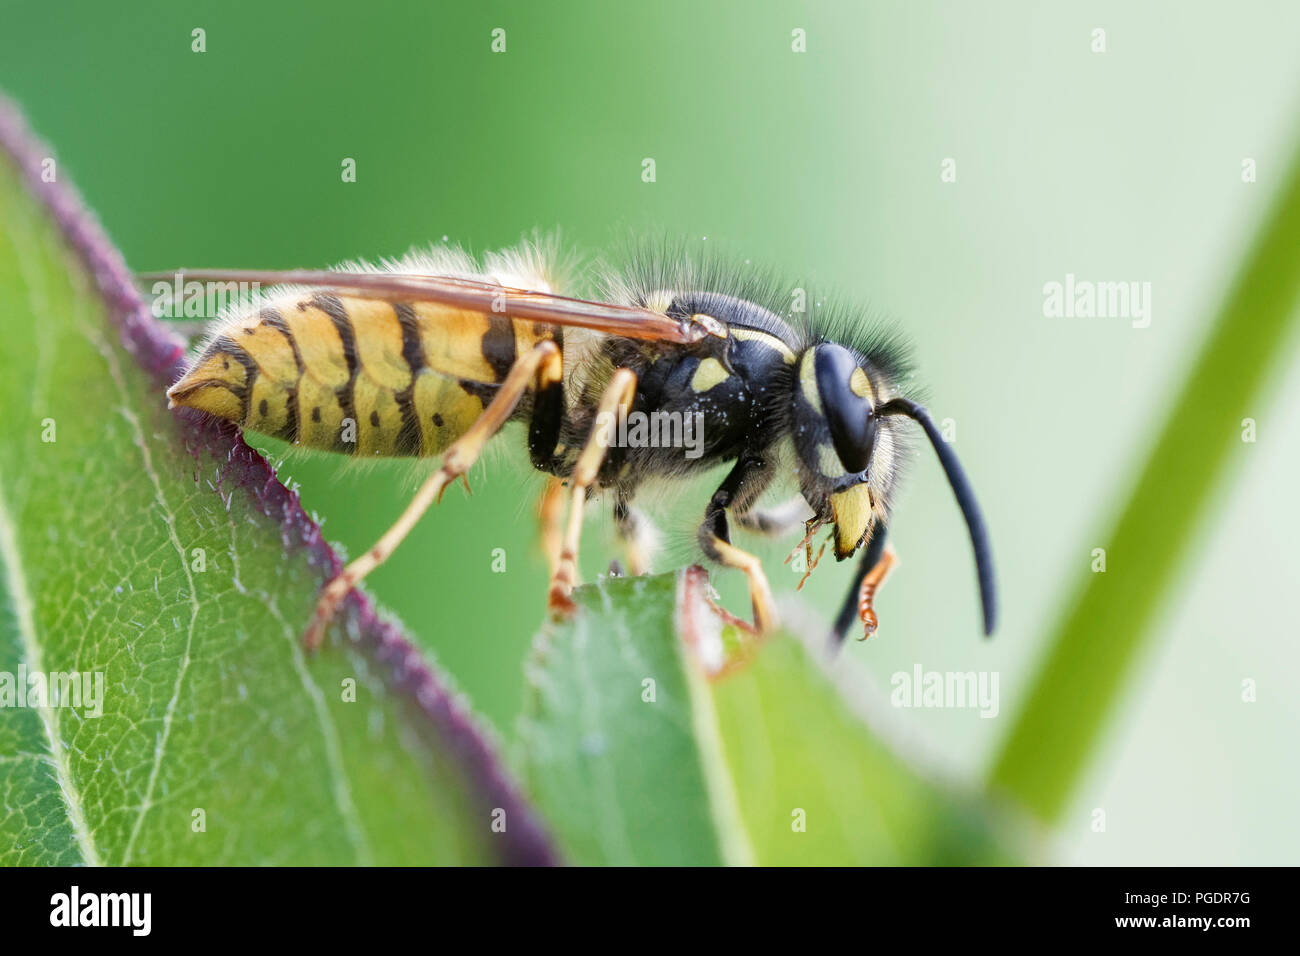 Side view of a common wasp - Stock Image